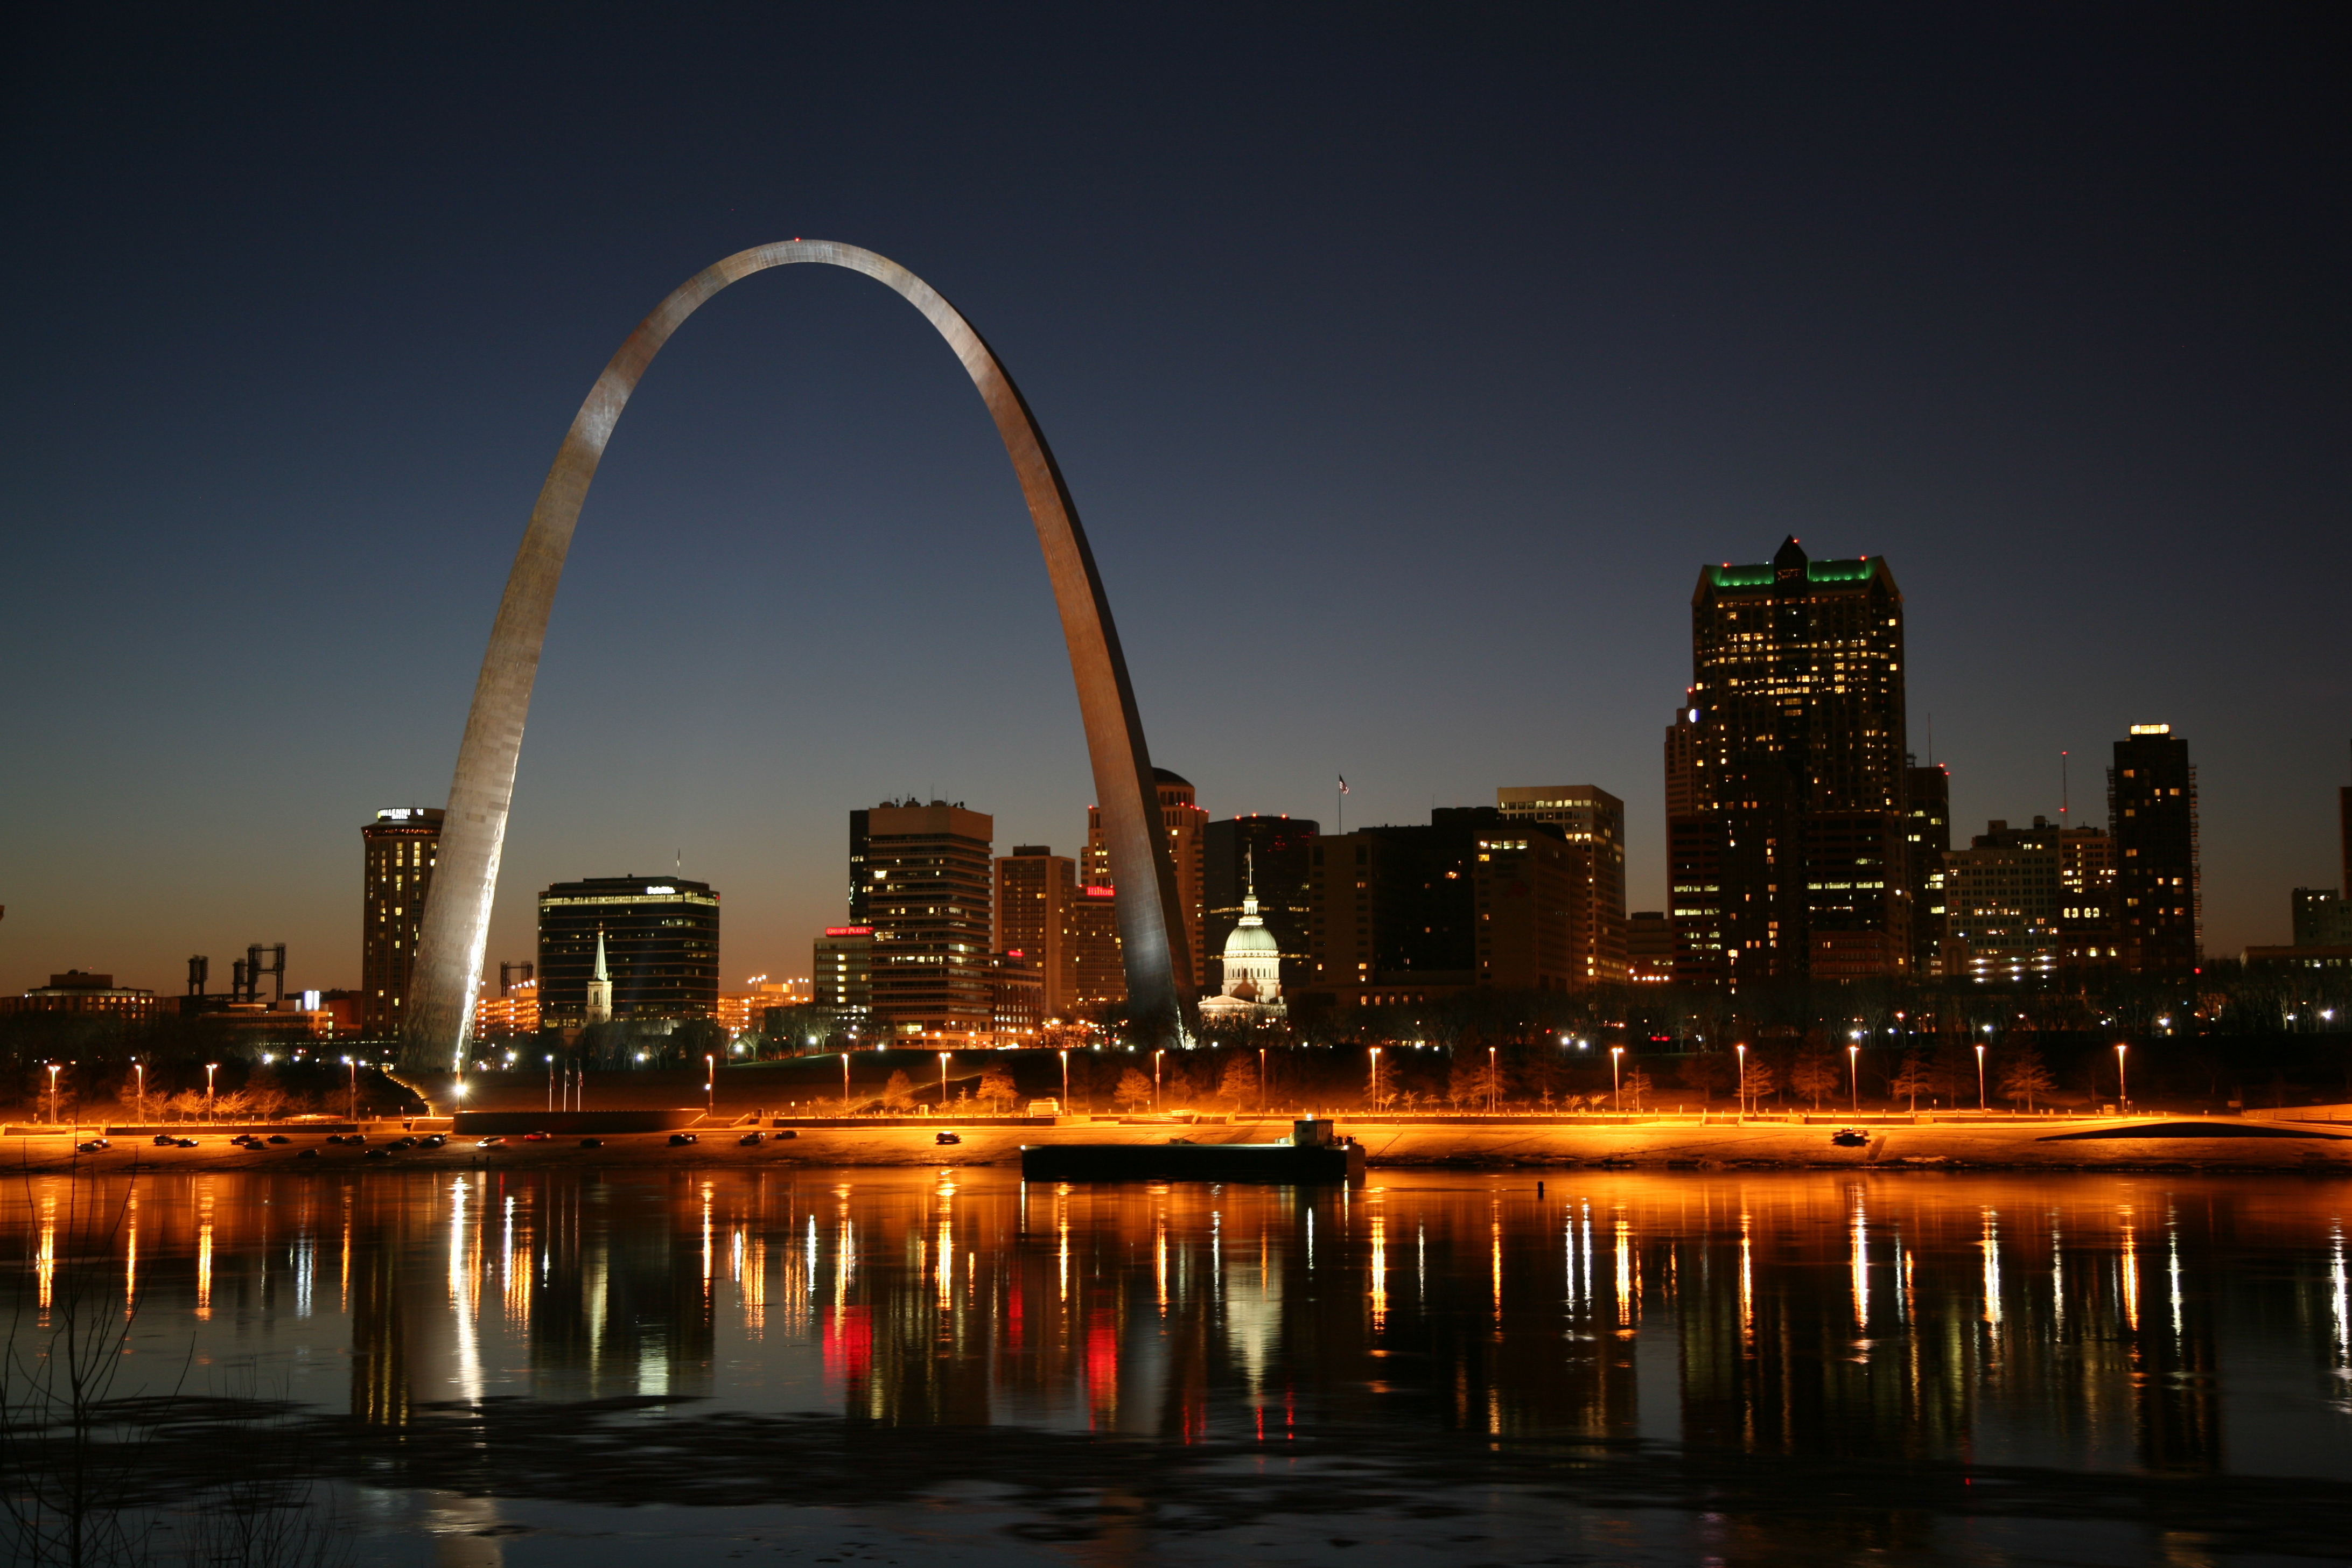 http://upload.wikimedia.org/wikipedia/commons/4/45/St_Louis_night.jpg